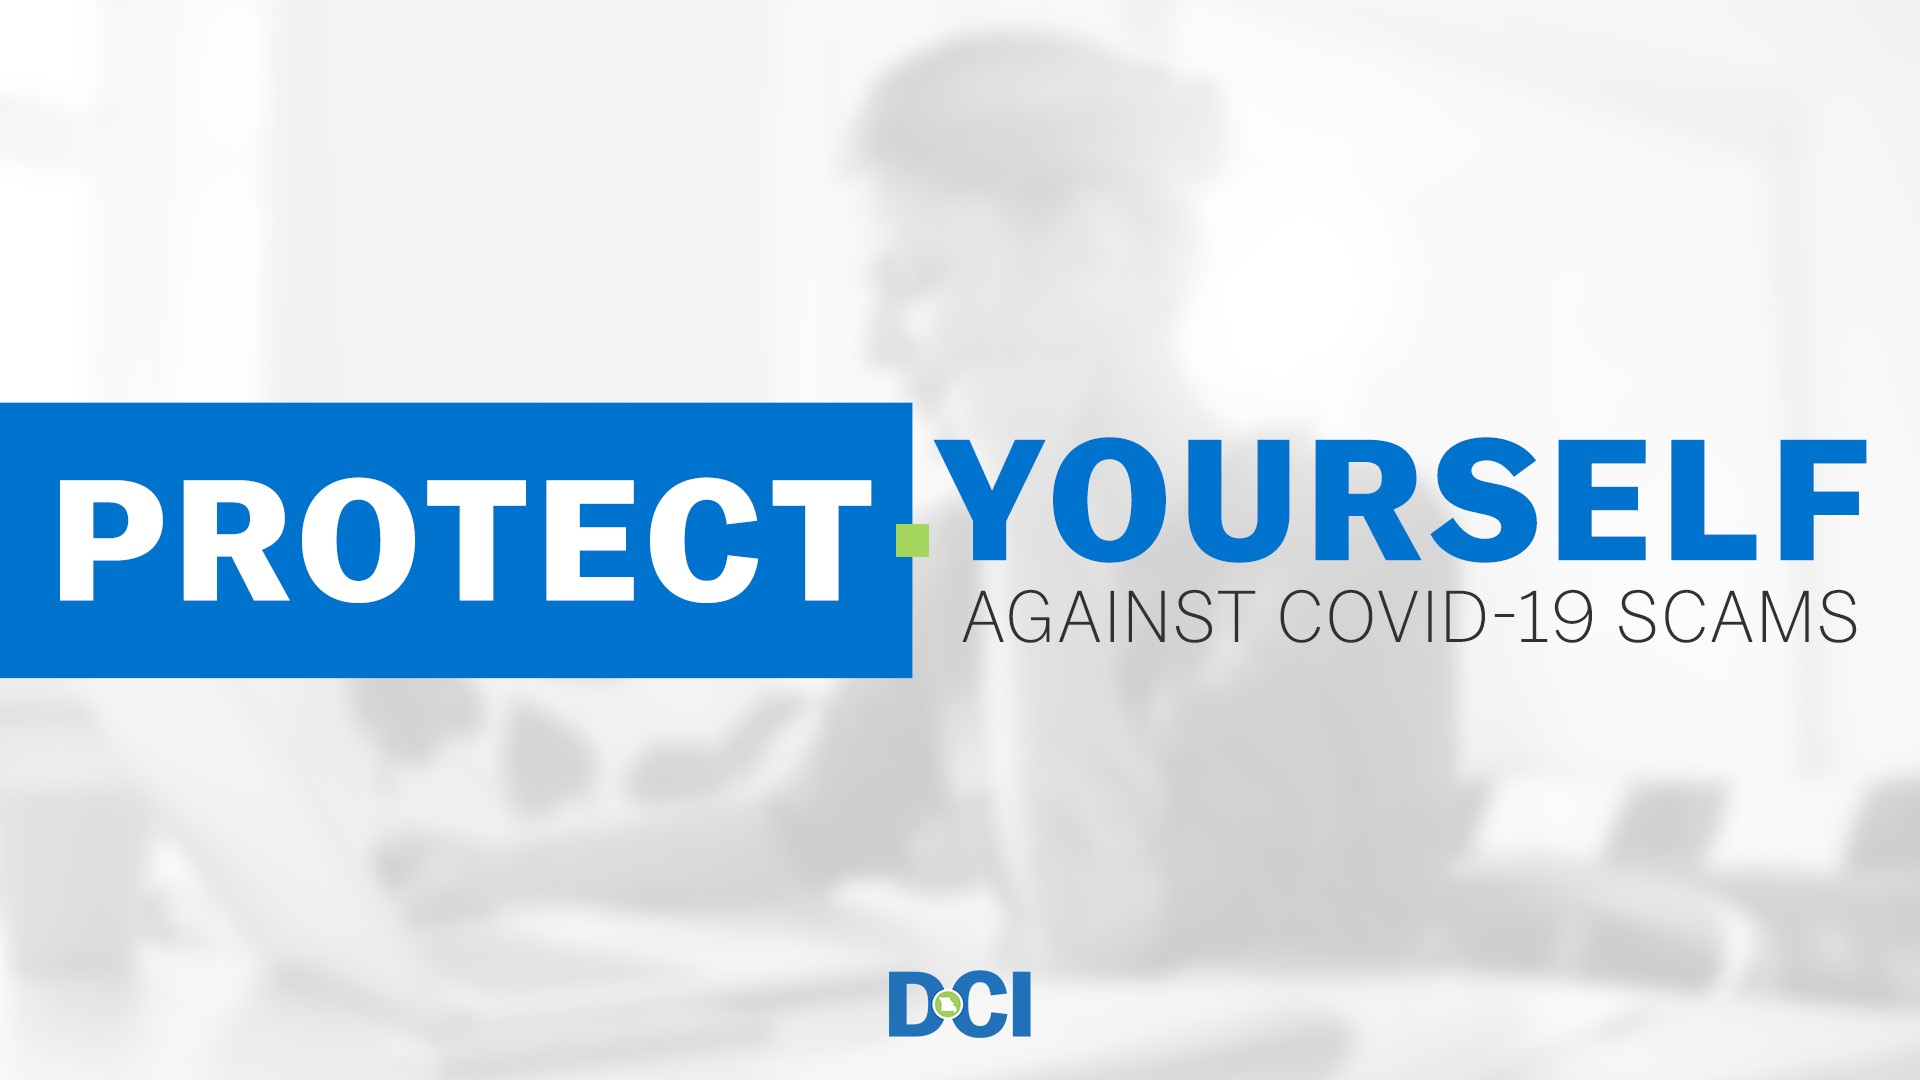 Protect Yourself against COVID-19 Scams